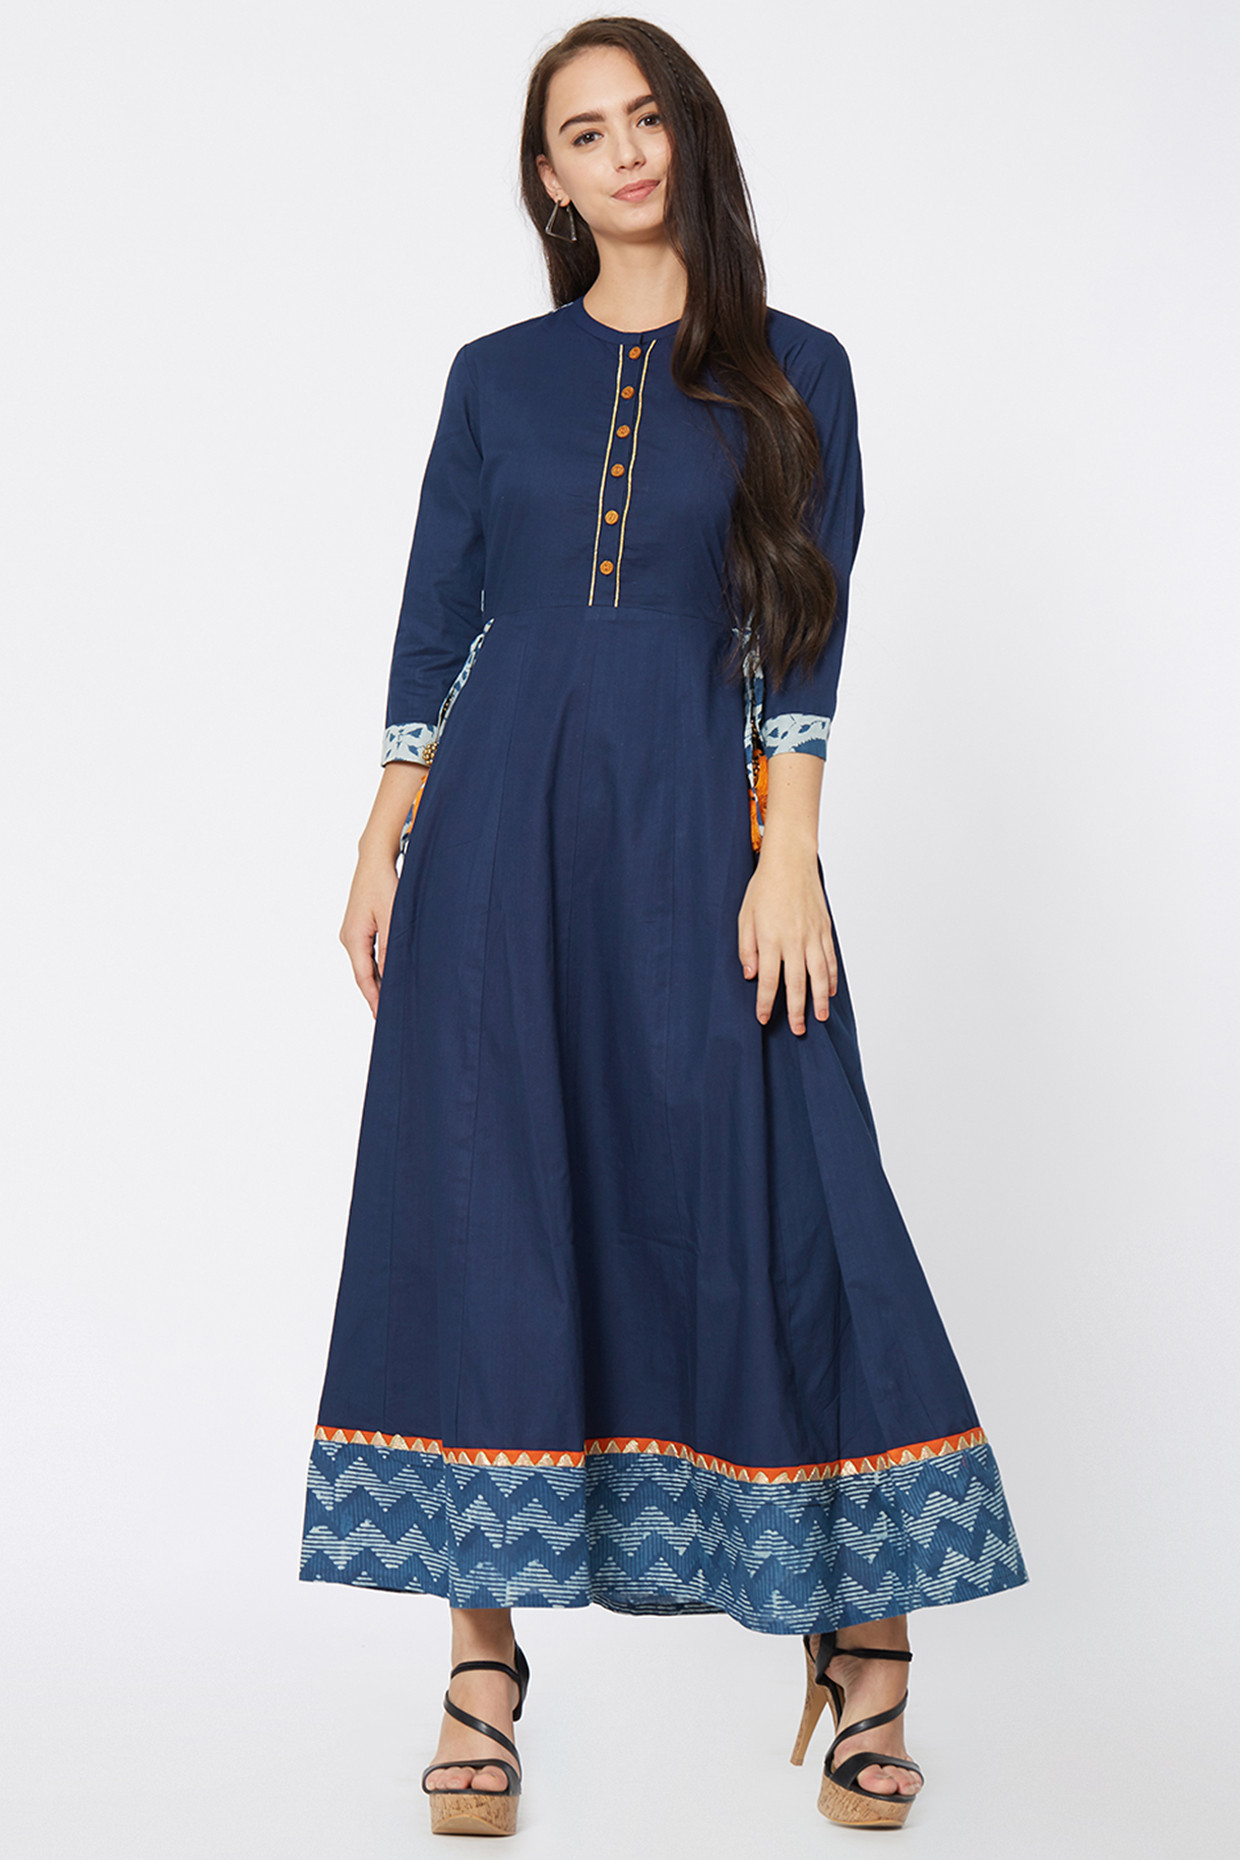 Hand Block Print Cotton Dress In Blue by House Of Idar